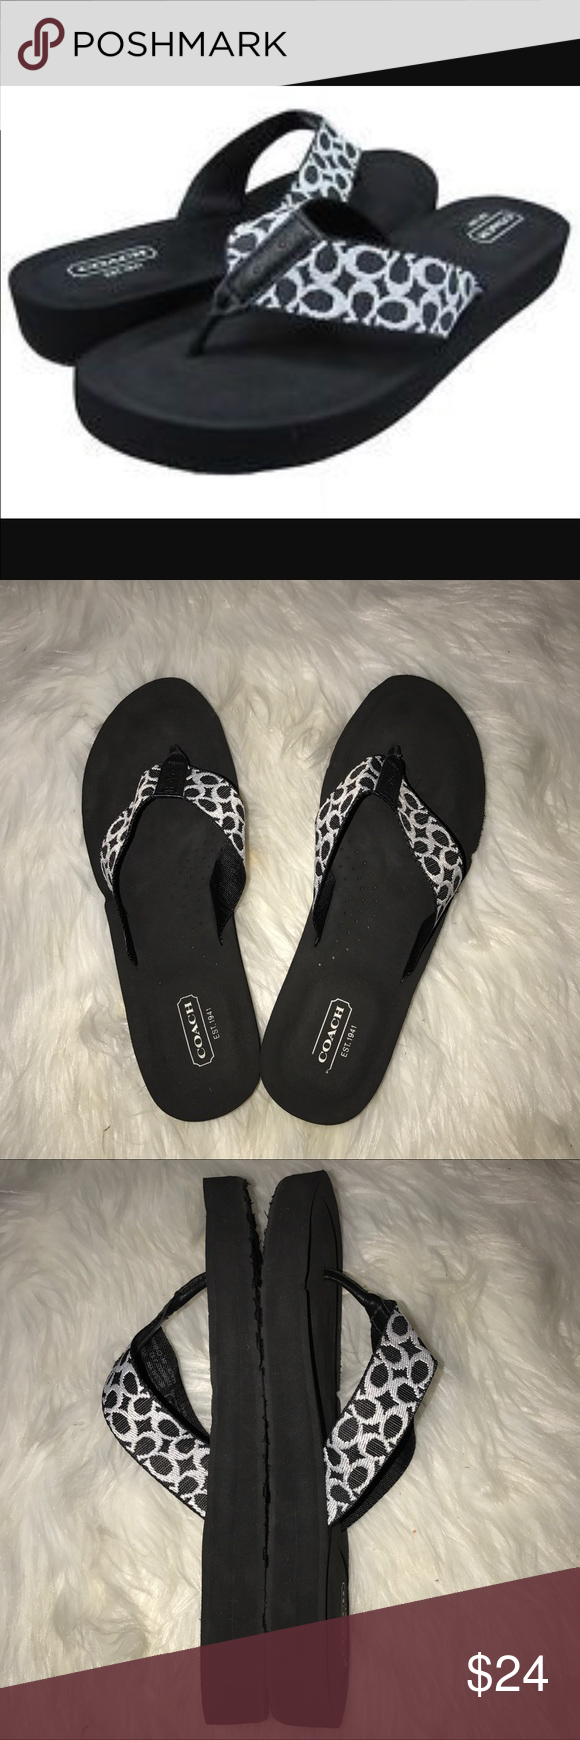 affc21aaf Coach Jessalyn Black White Signature Flip Flops Super cute and comfy!  Cushioned black sole with signature C thong design. Excellent quality and  condition.